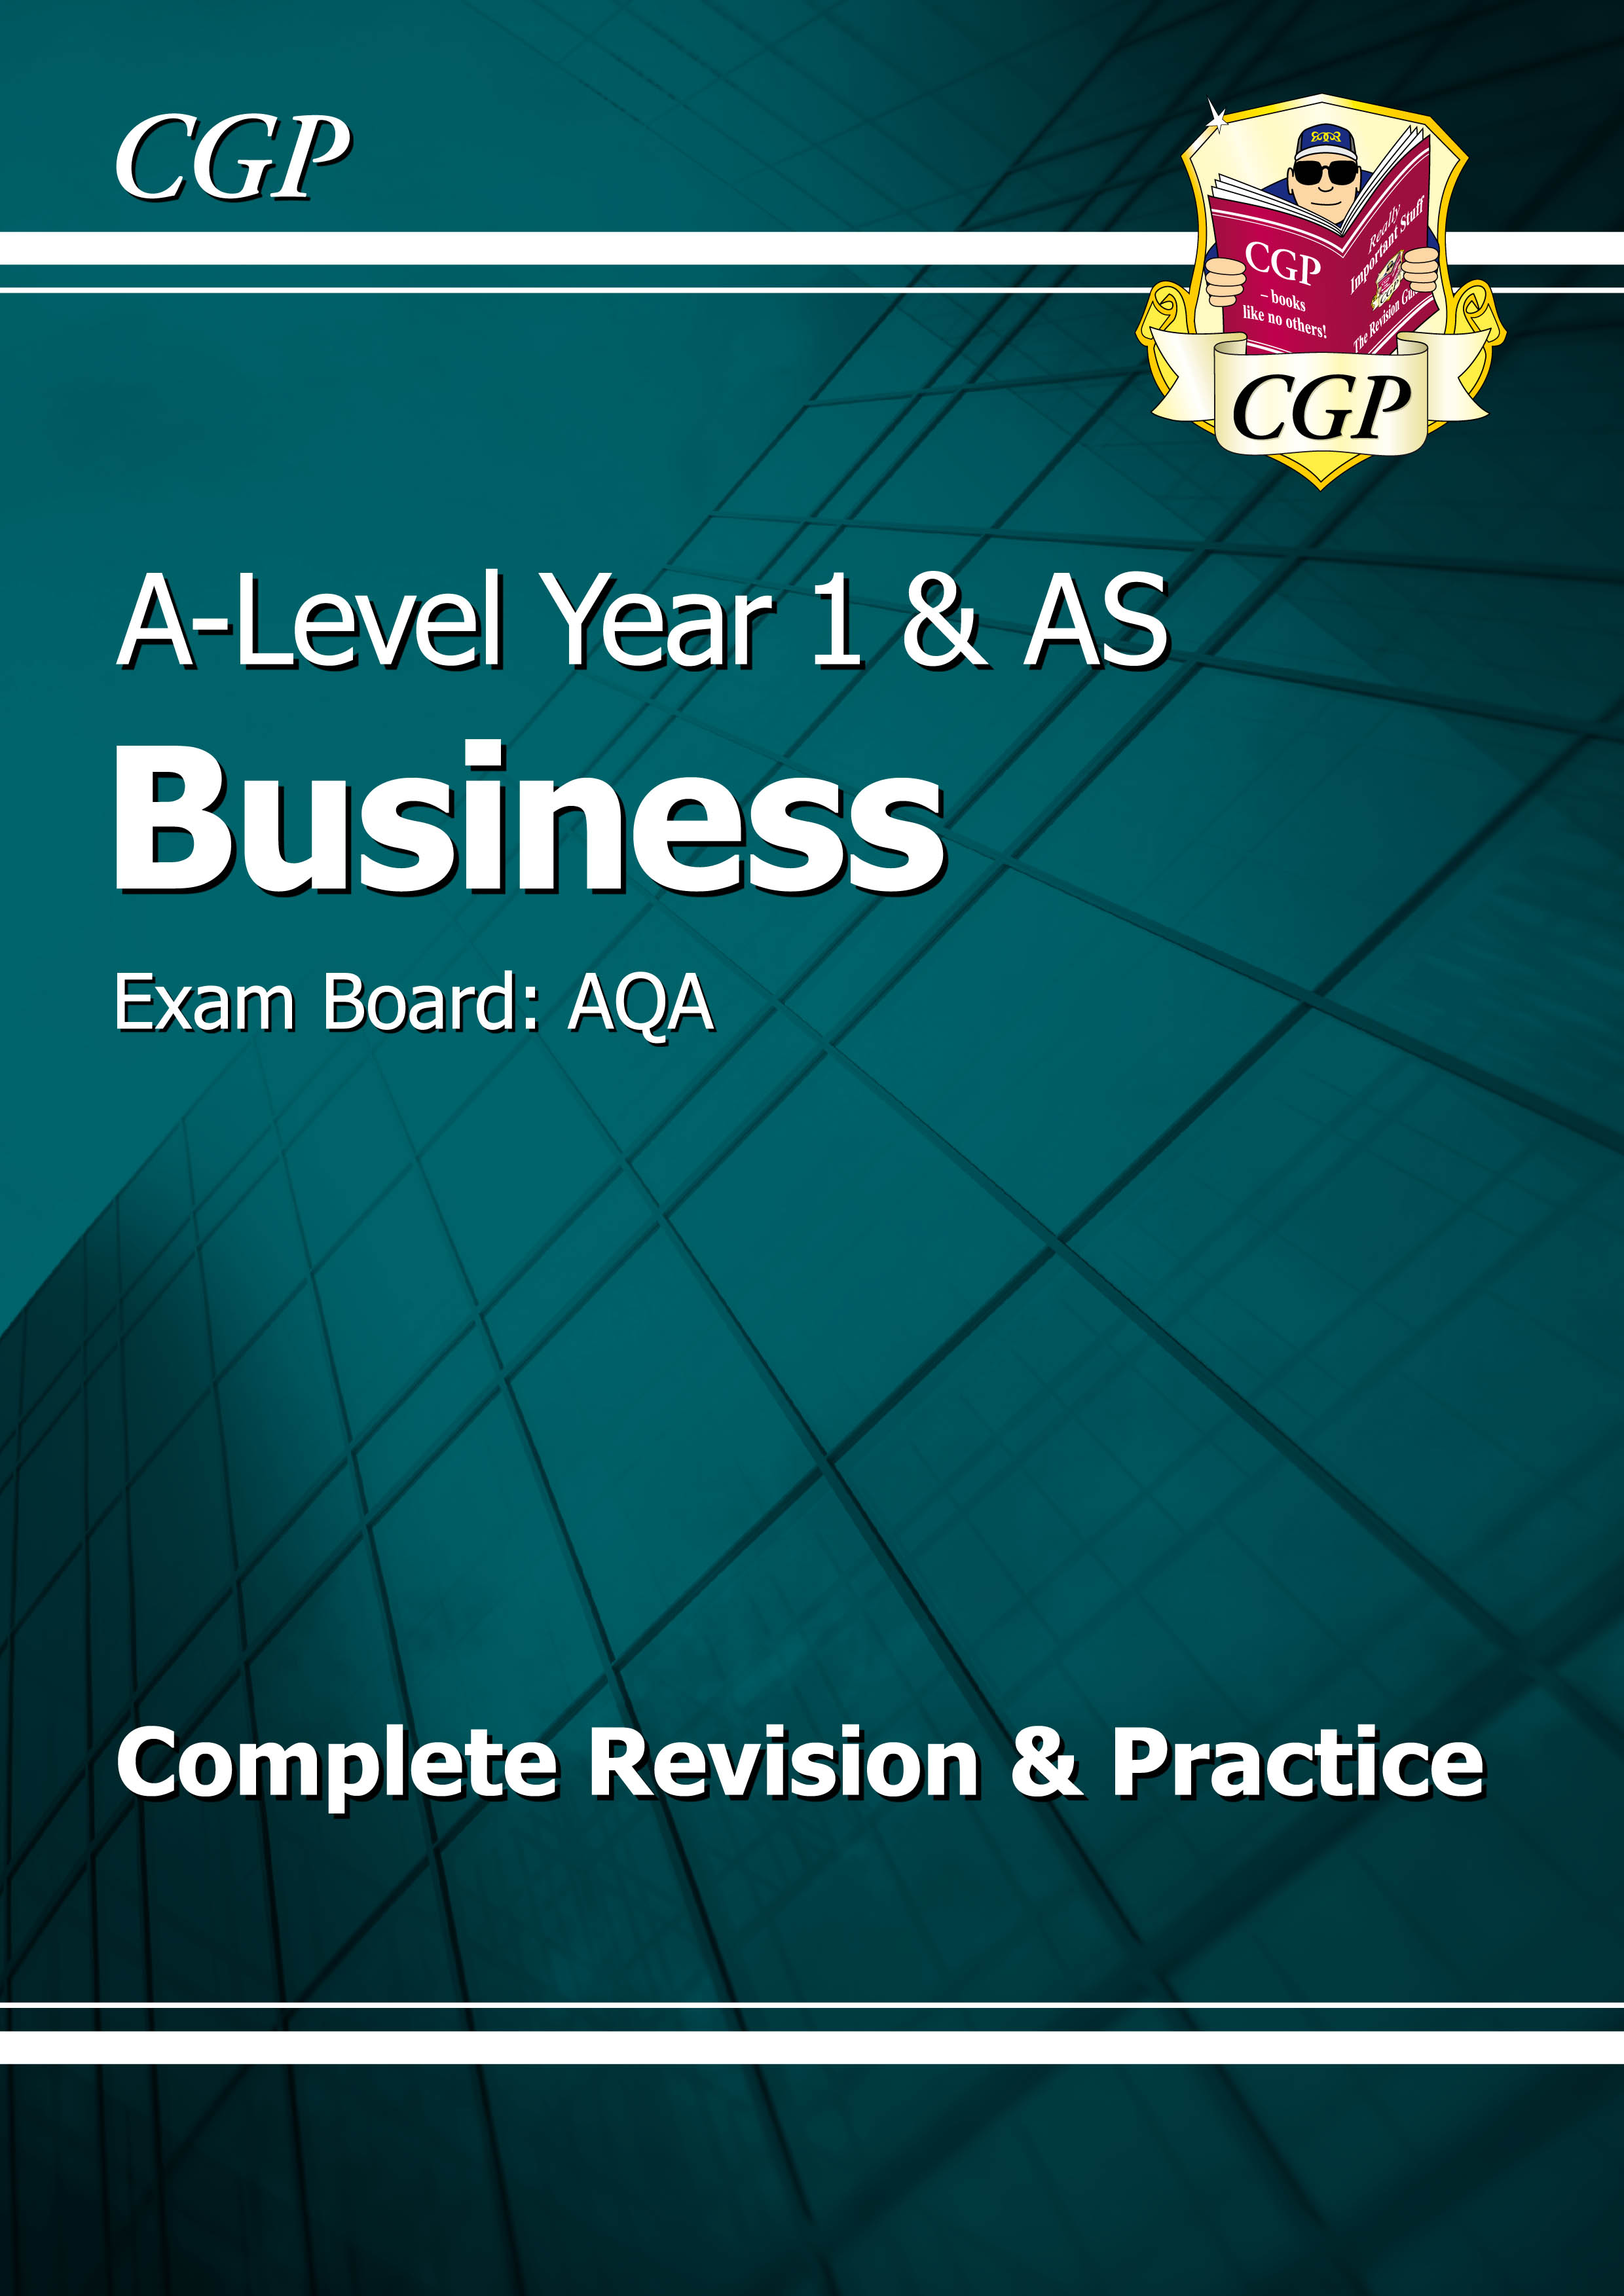 BUAR54DK - A-Level Business: AQA Year 1 & AS Complete Revision & Practice